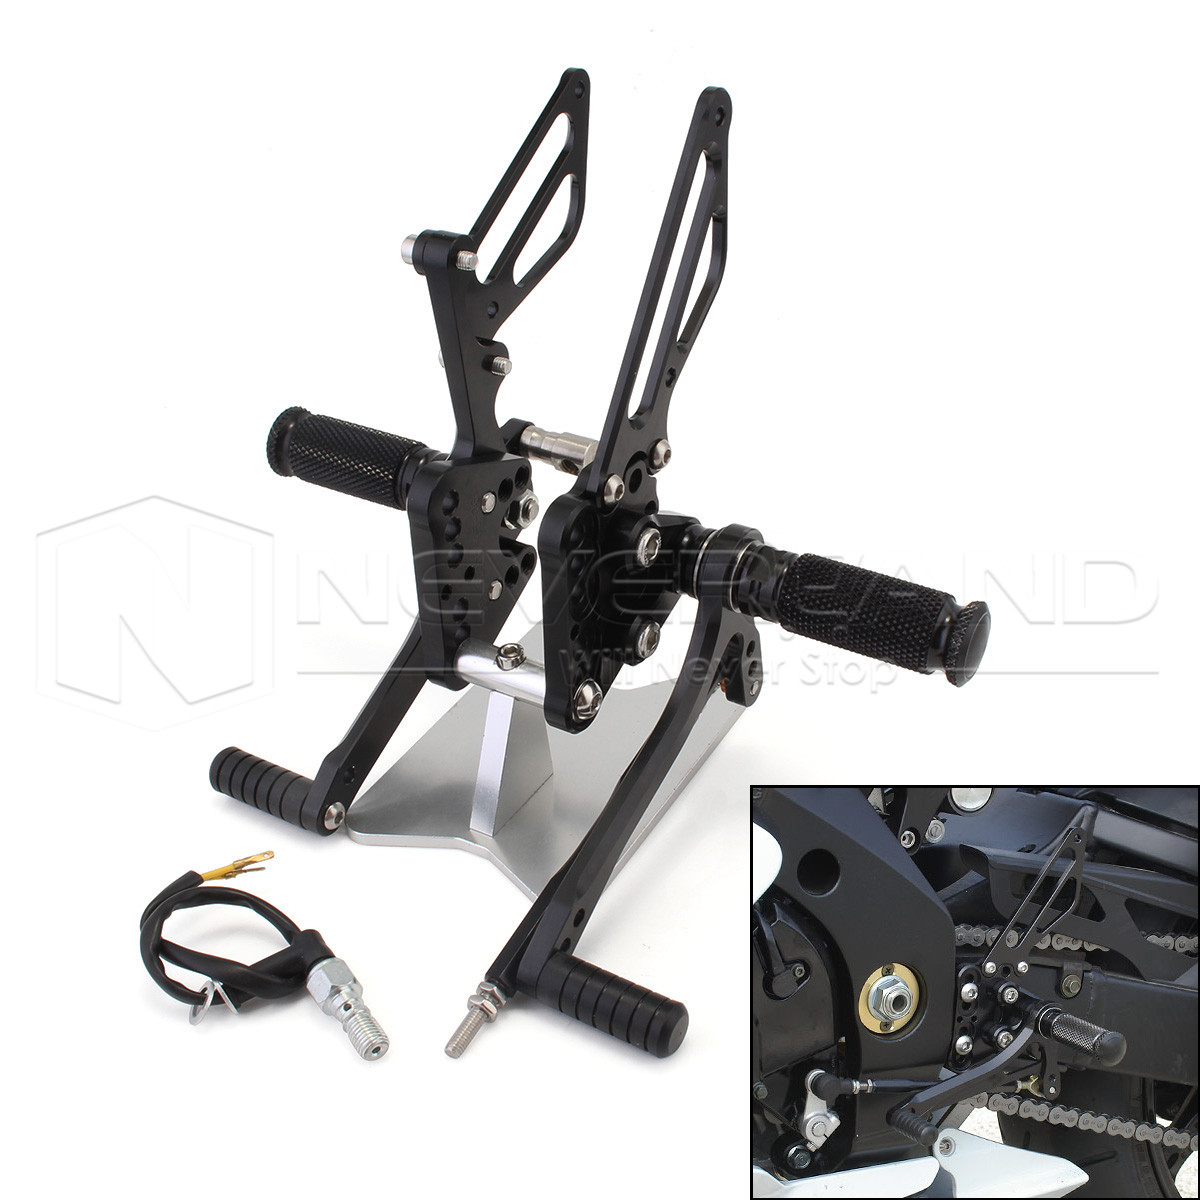 Motorcycle Foot Rests for Suzuki GSXR1000 GSXR 1000 2005 2006 CNC Rearset Foot pegs Rear set Black D20 aftermarket free shipping motorcycle parts front rider foot pegs bracket fit for suzuki gsxr1000 2005 2006 2007 2008 polish